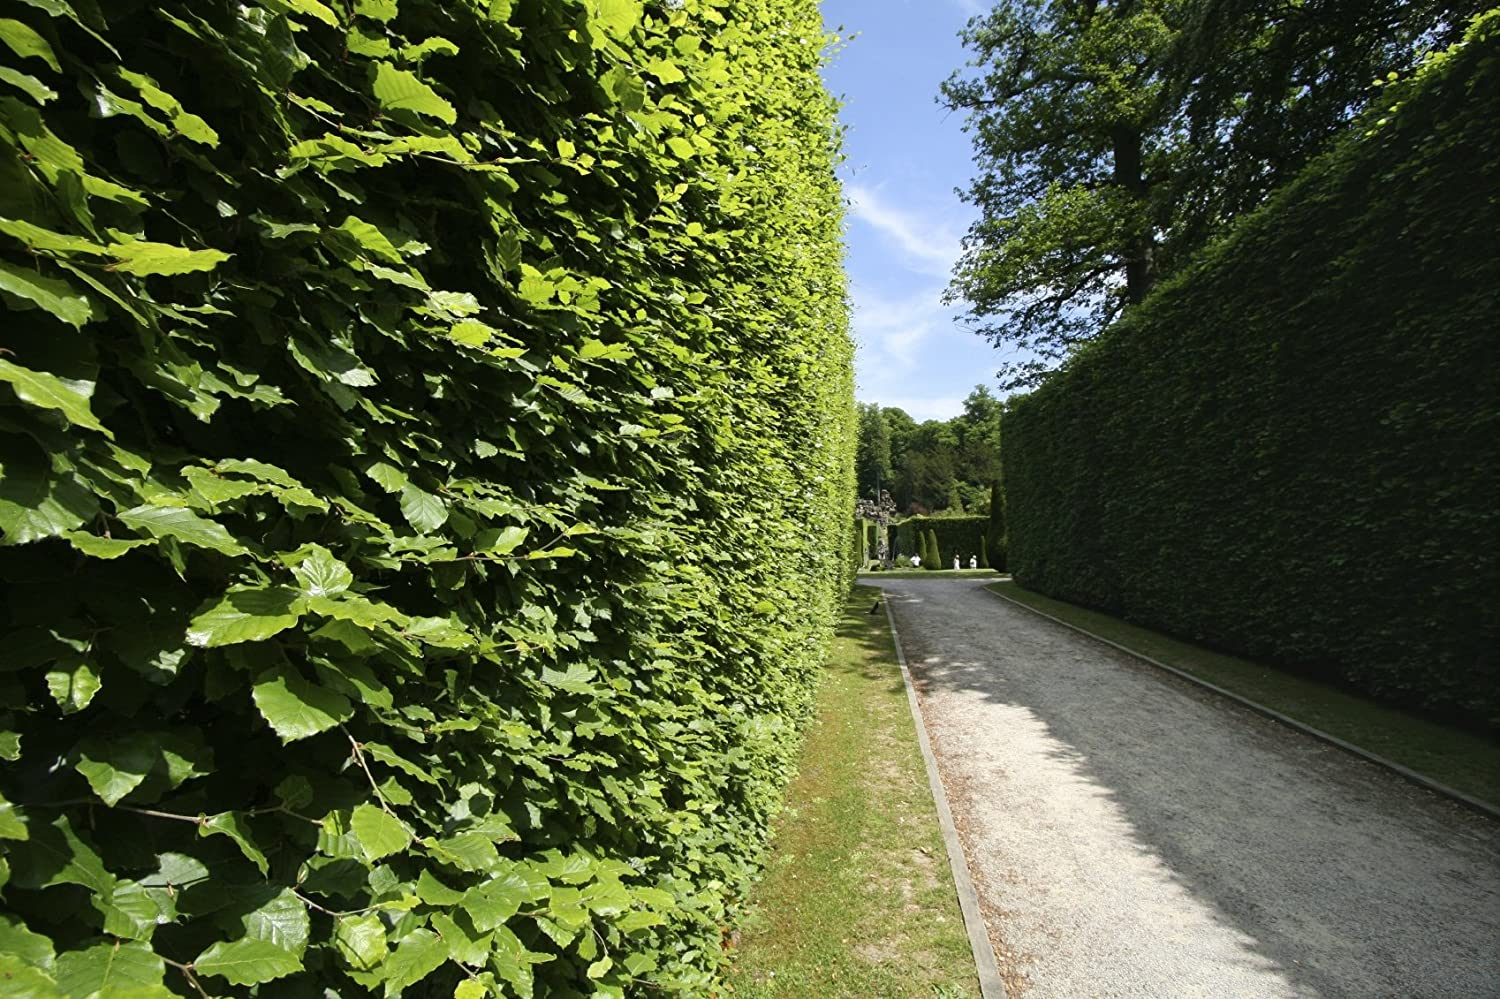 5 Green Beech 5-6ft Instant Hedging Trees,Strong 4 Year Old Feathered Plants 3fatpigs/®